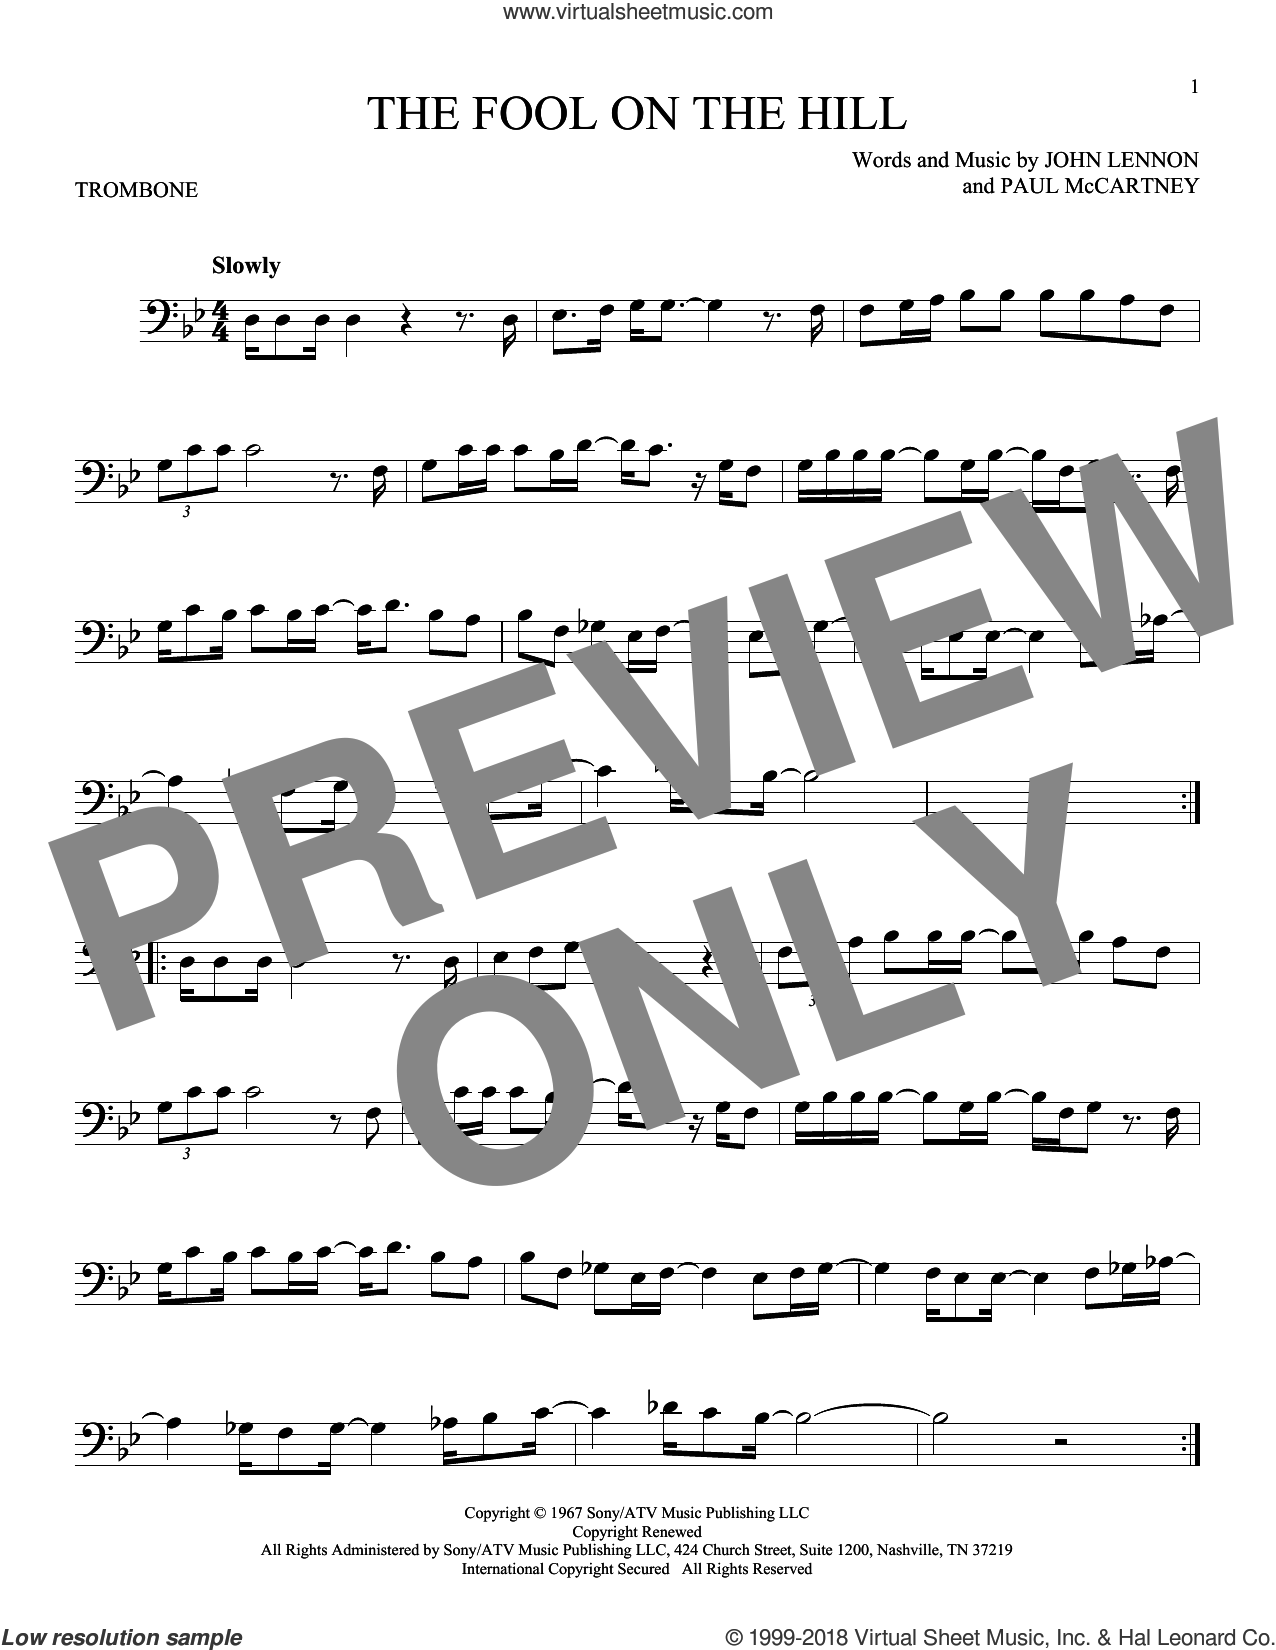 The Fool On The Hill sheet music for trombone solo by The Beatles, John Lennon and Paul McCartney, intermediate skill level